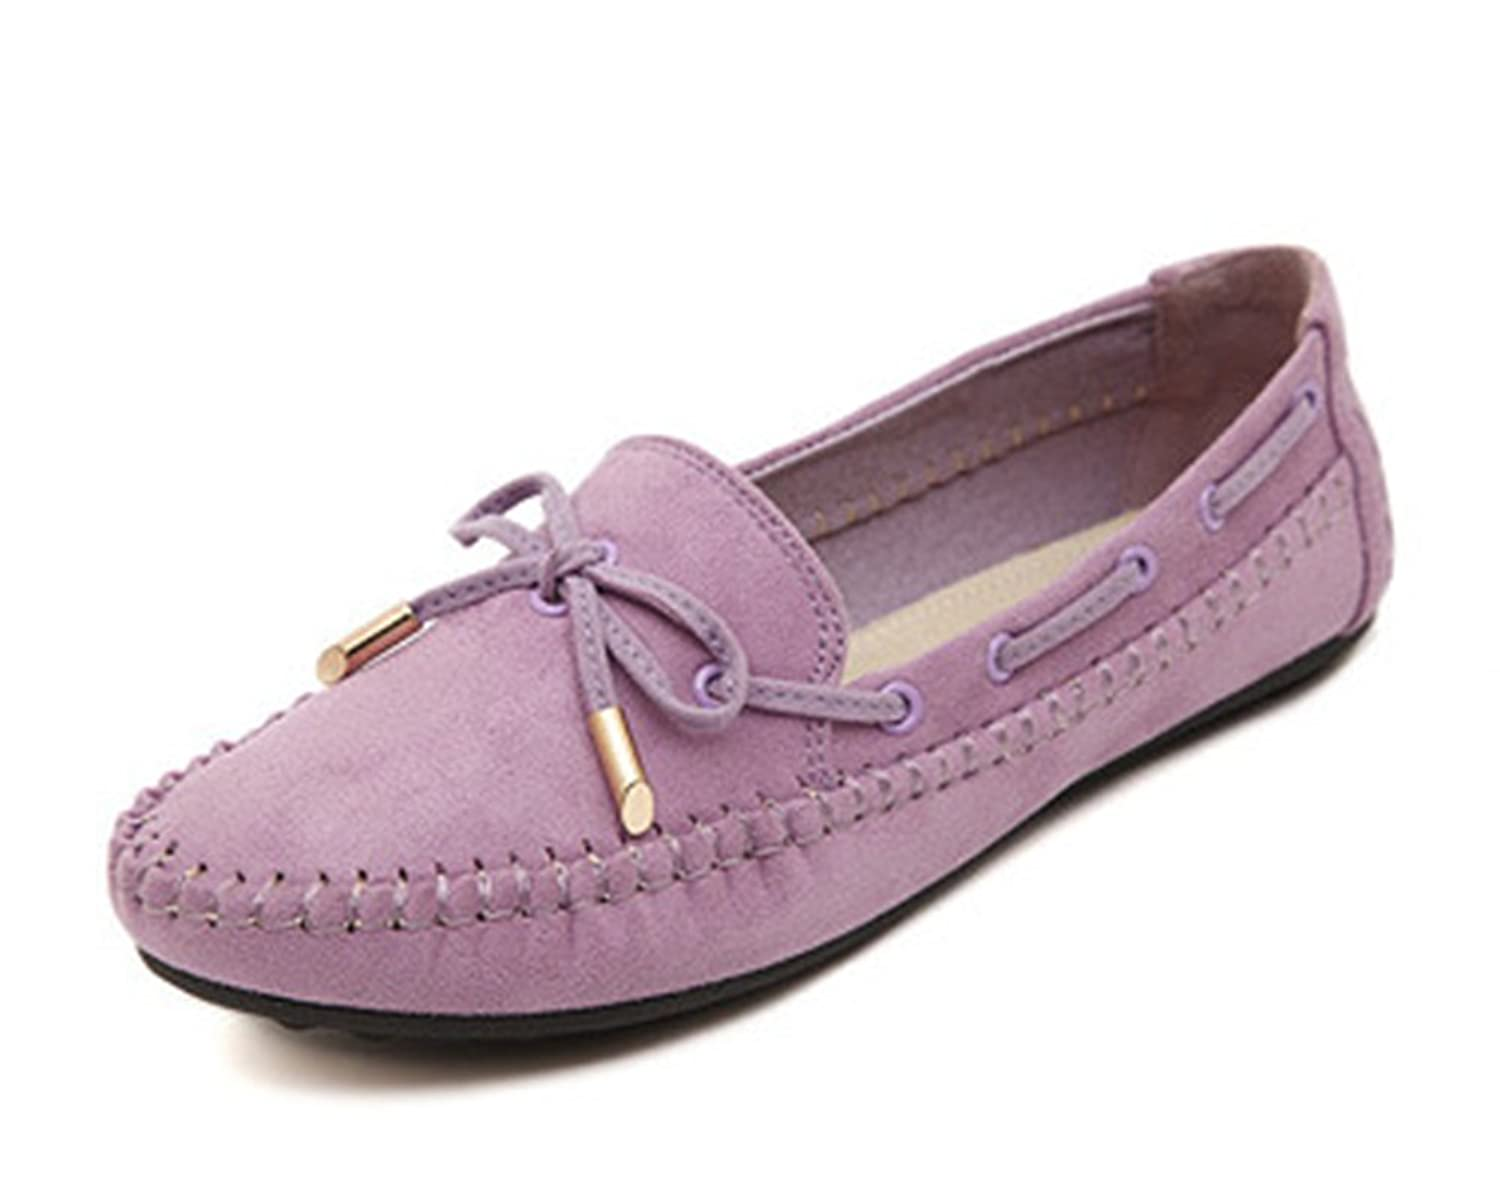 Aisun Women's Casual Sweet Bowknot Slip On Loafers